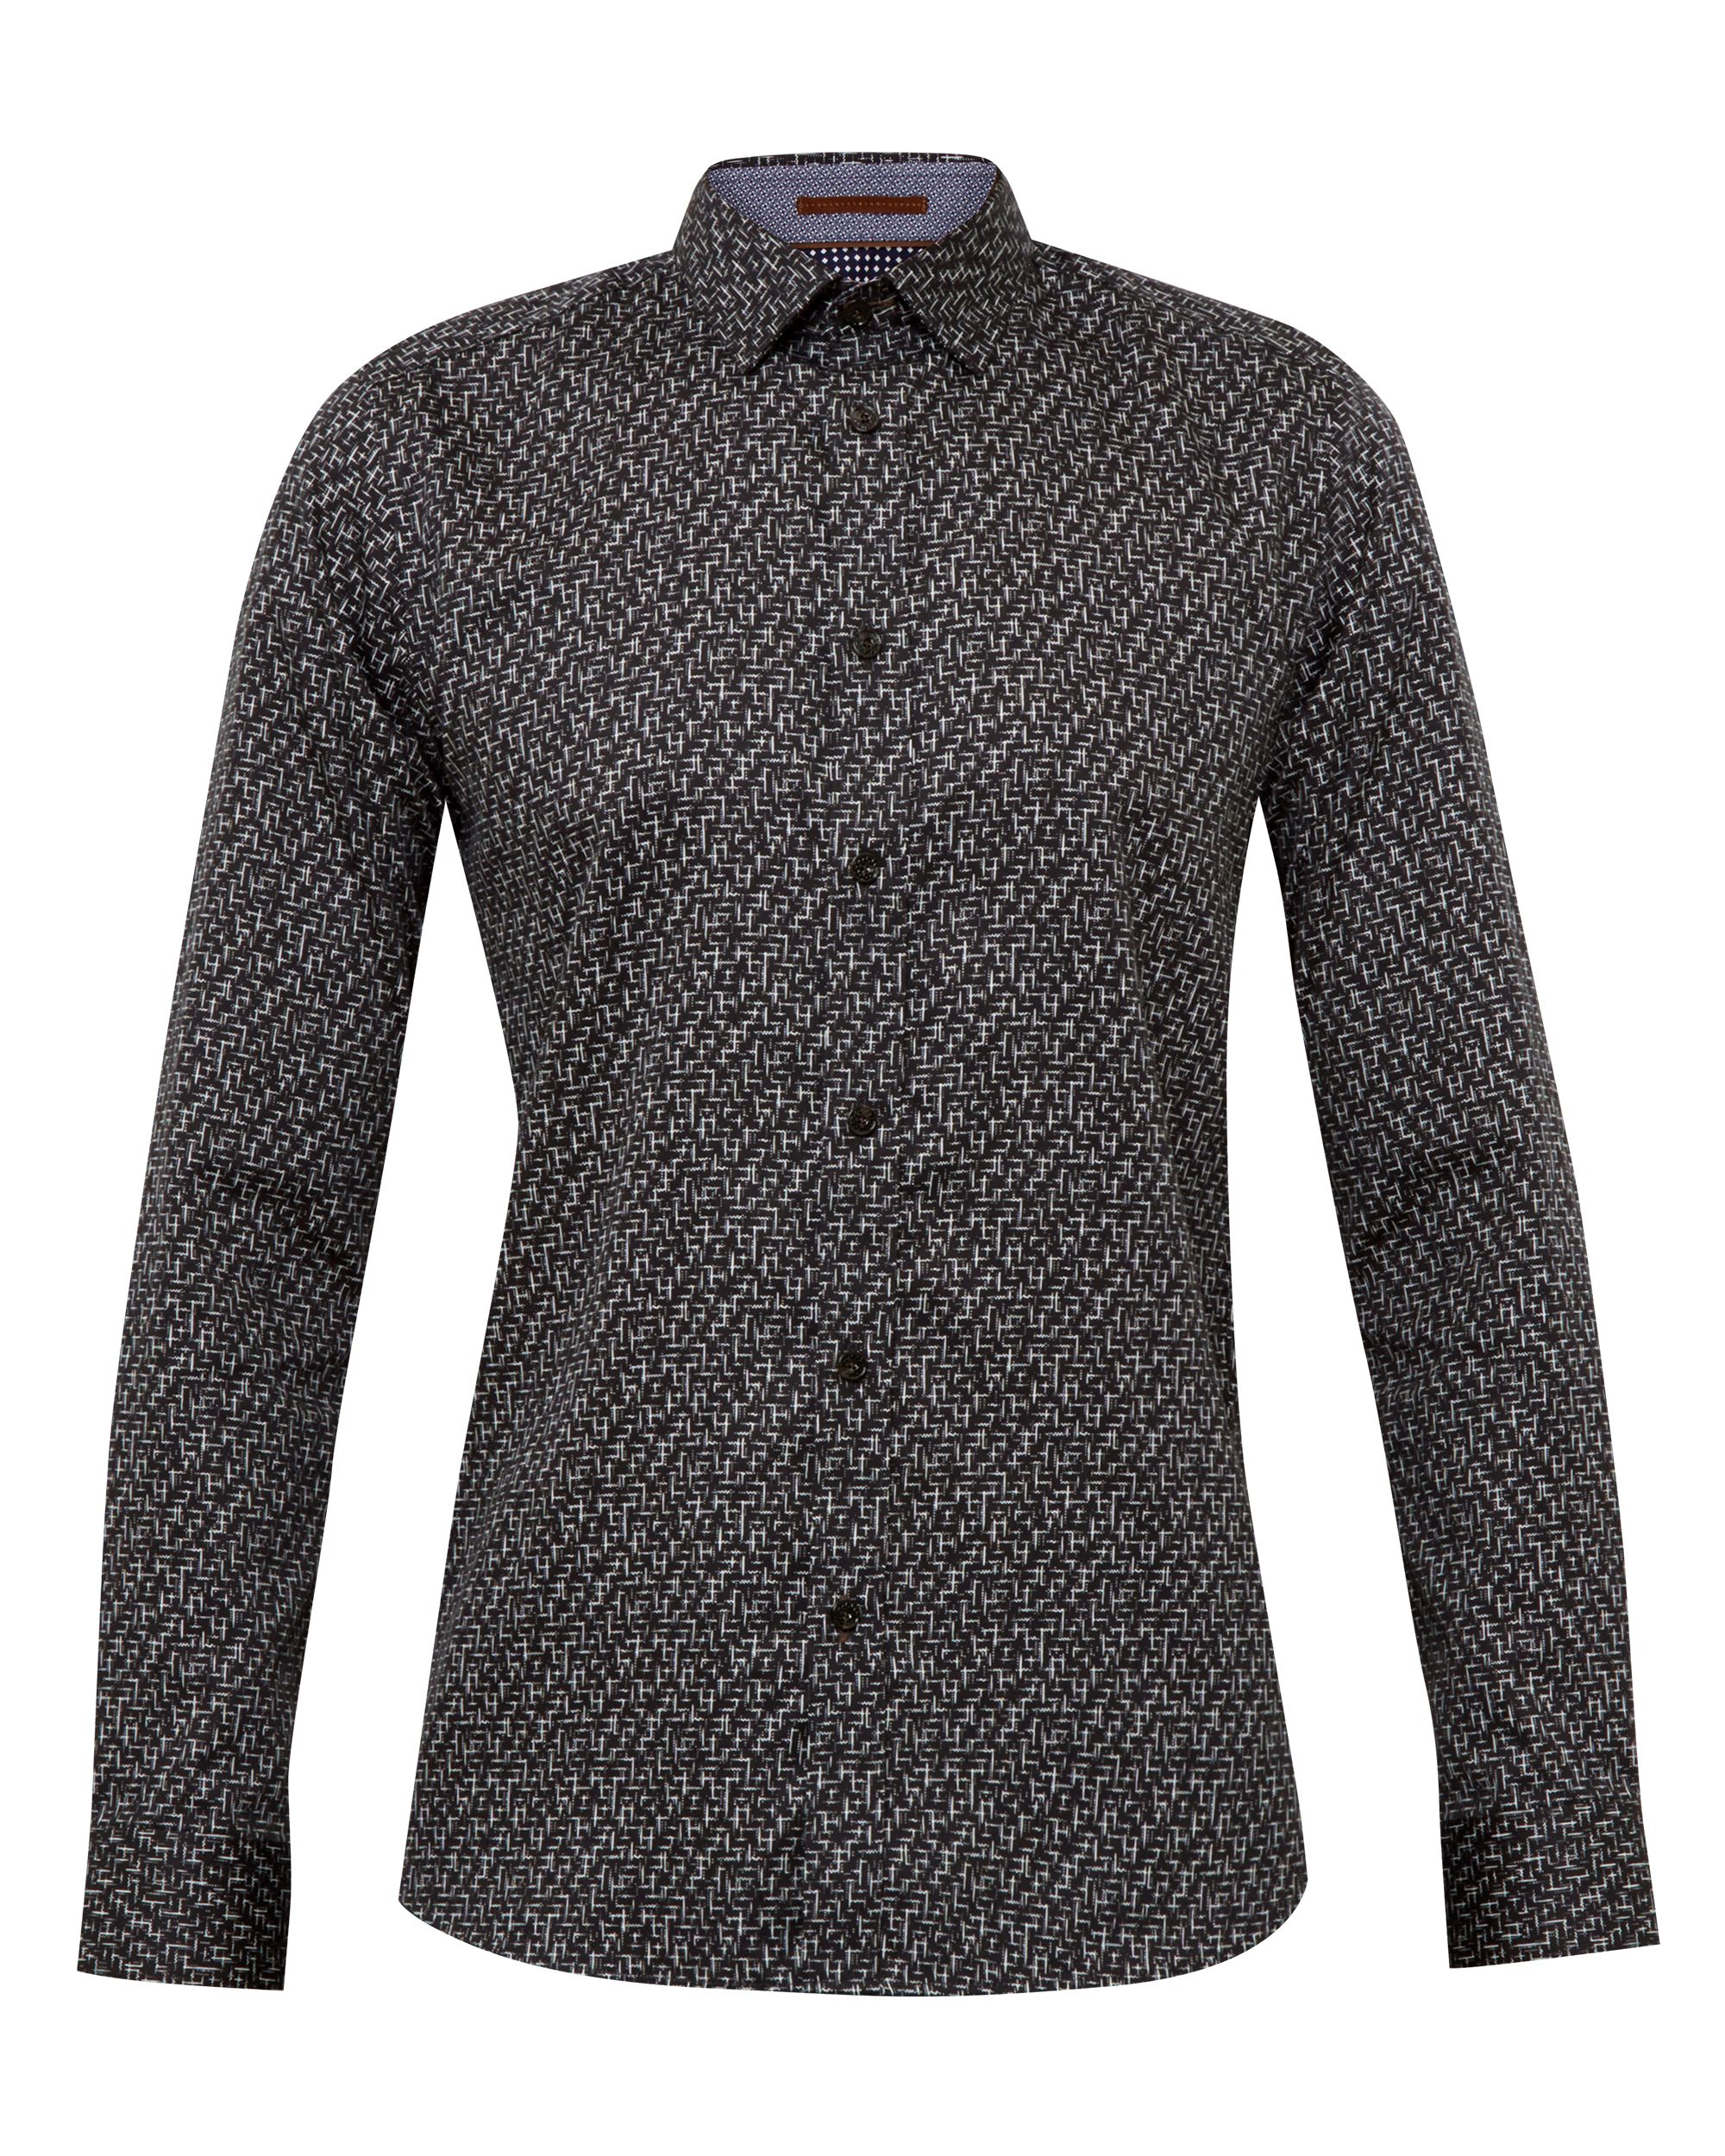 Mens Ted Baker Squigle Squiggle Design Cotton Shirt Black